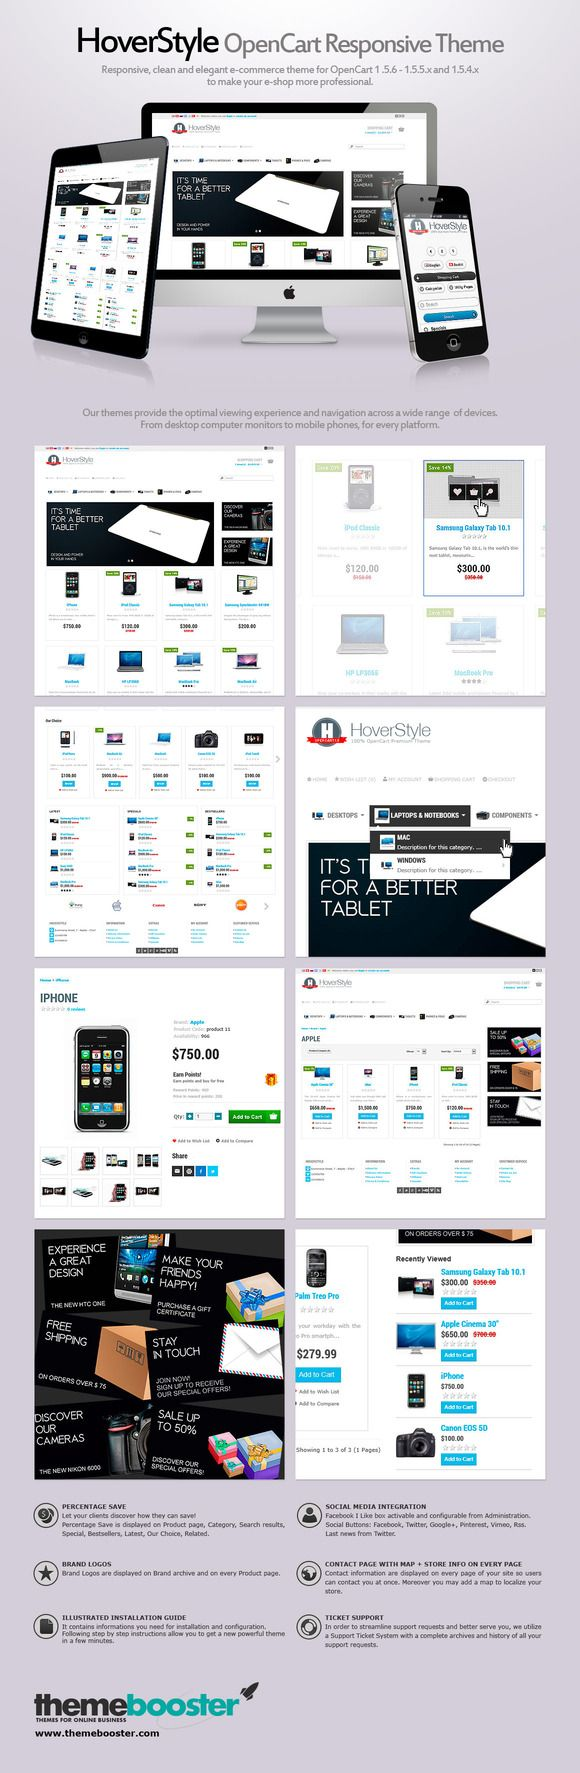 HoverStyle OpenCart Responsive Theme by ThemeBooster.com on Creative Market